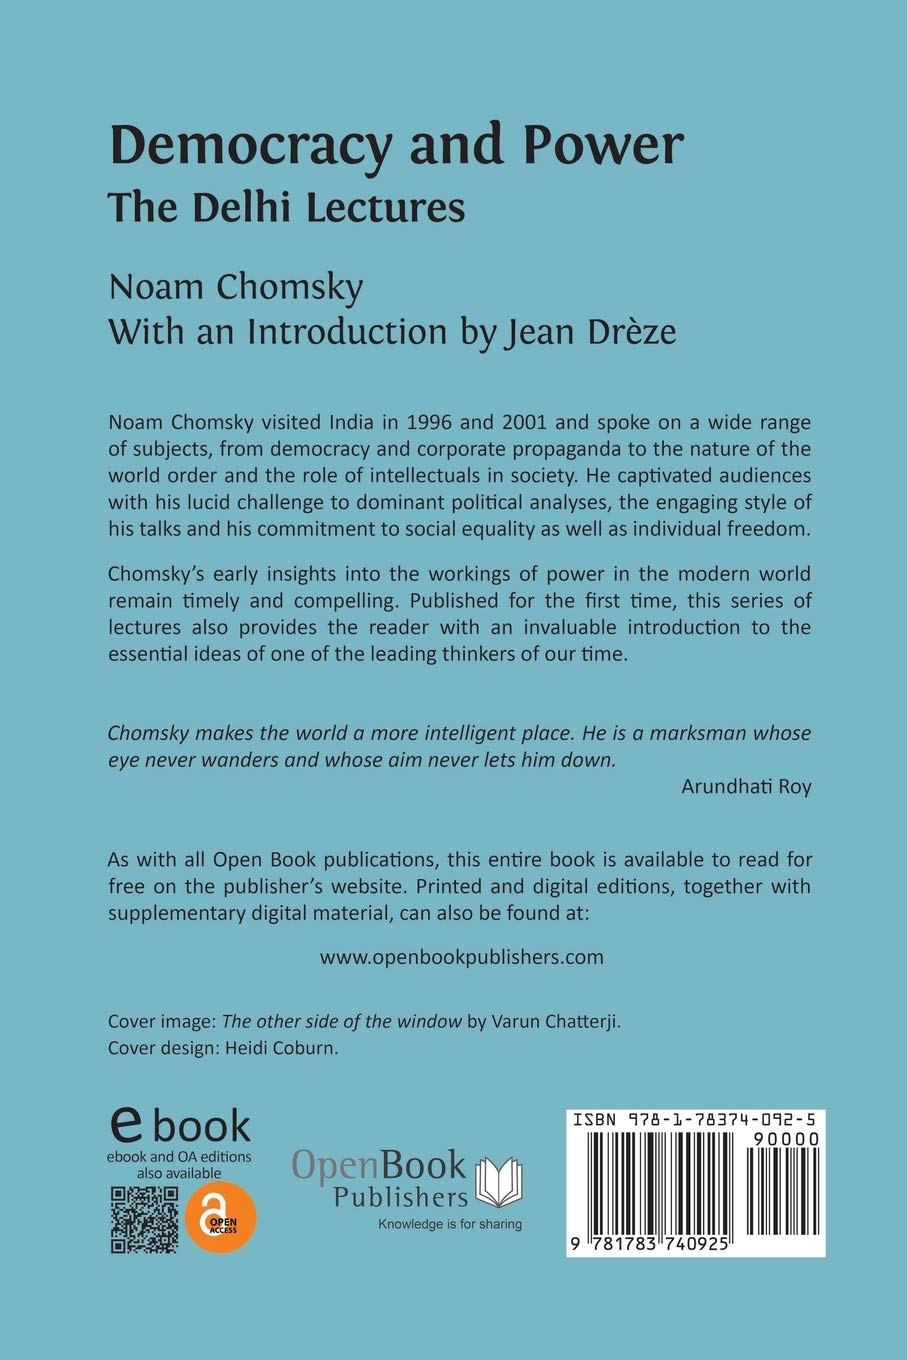 Democracy and Power: The Delhi Lectures: Noam Chomsky, Jean